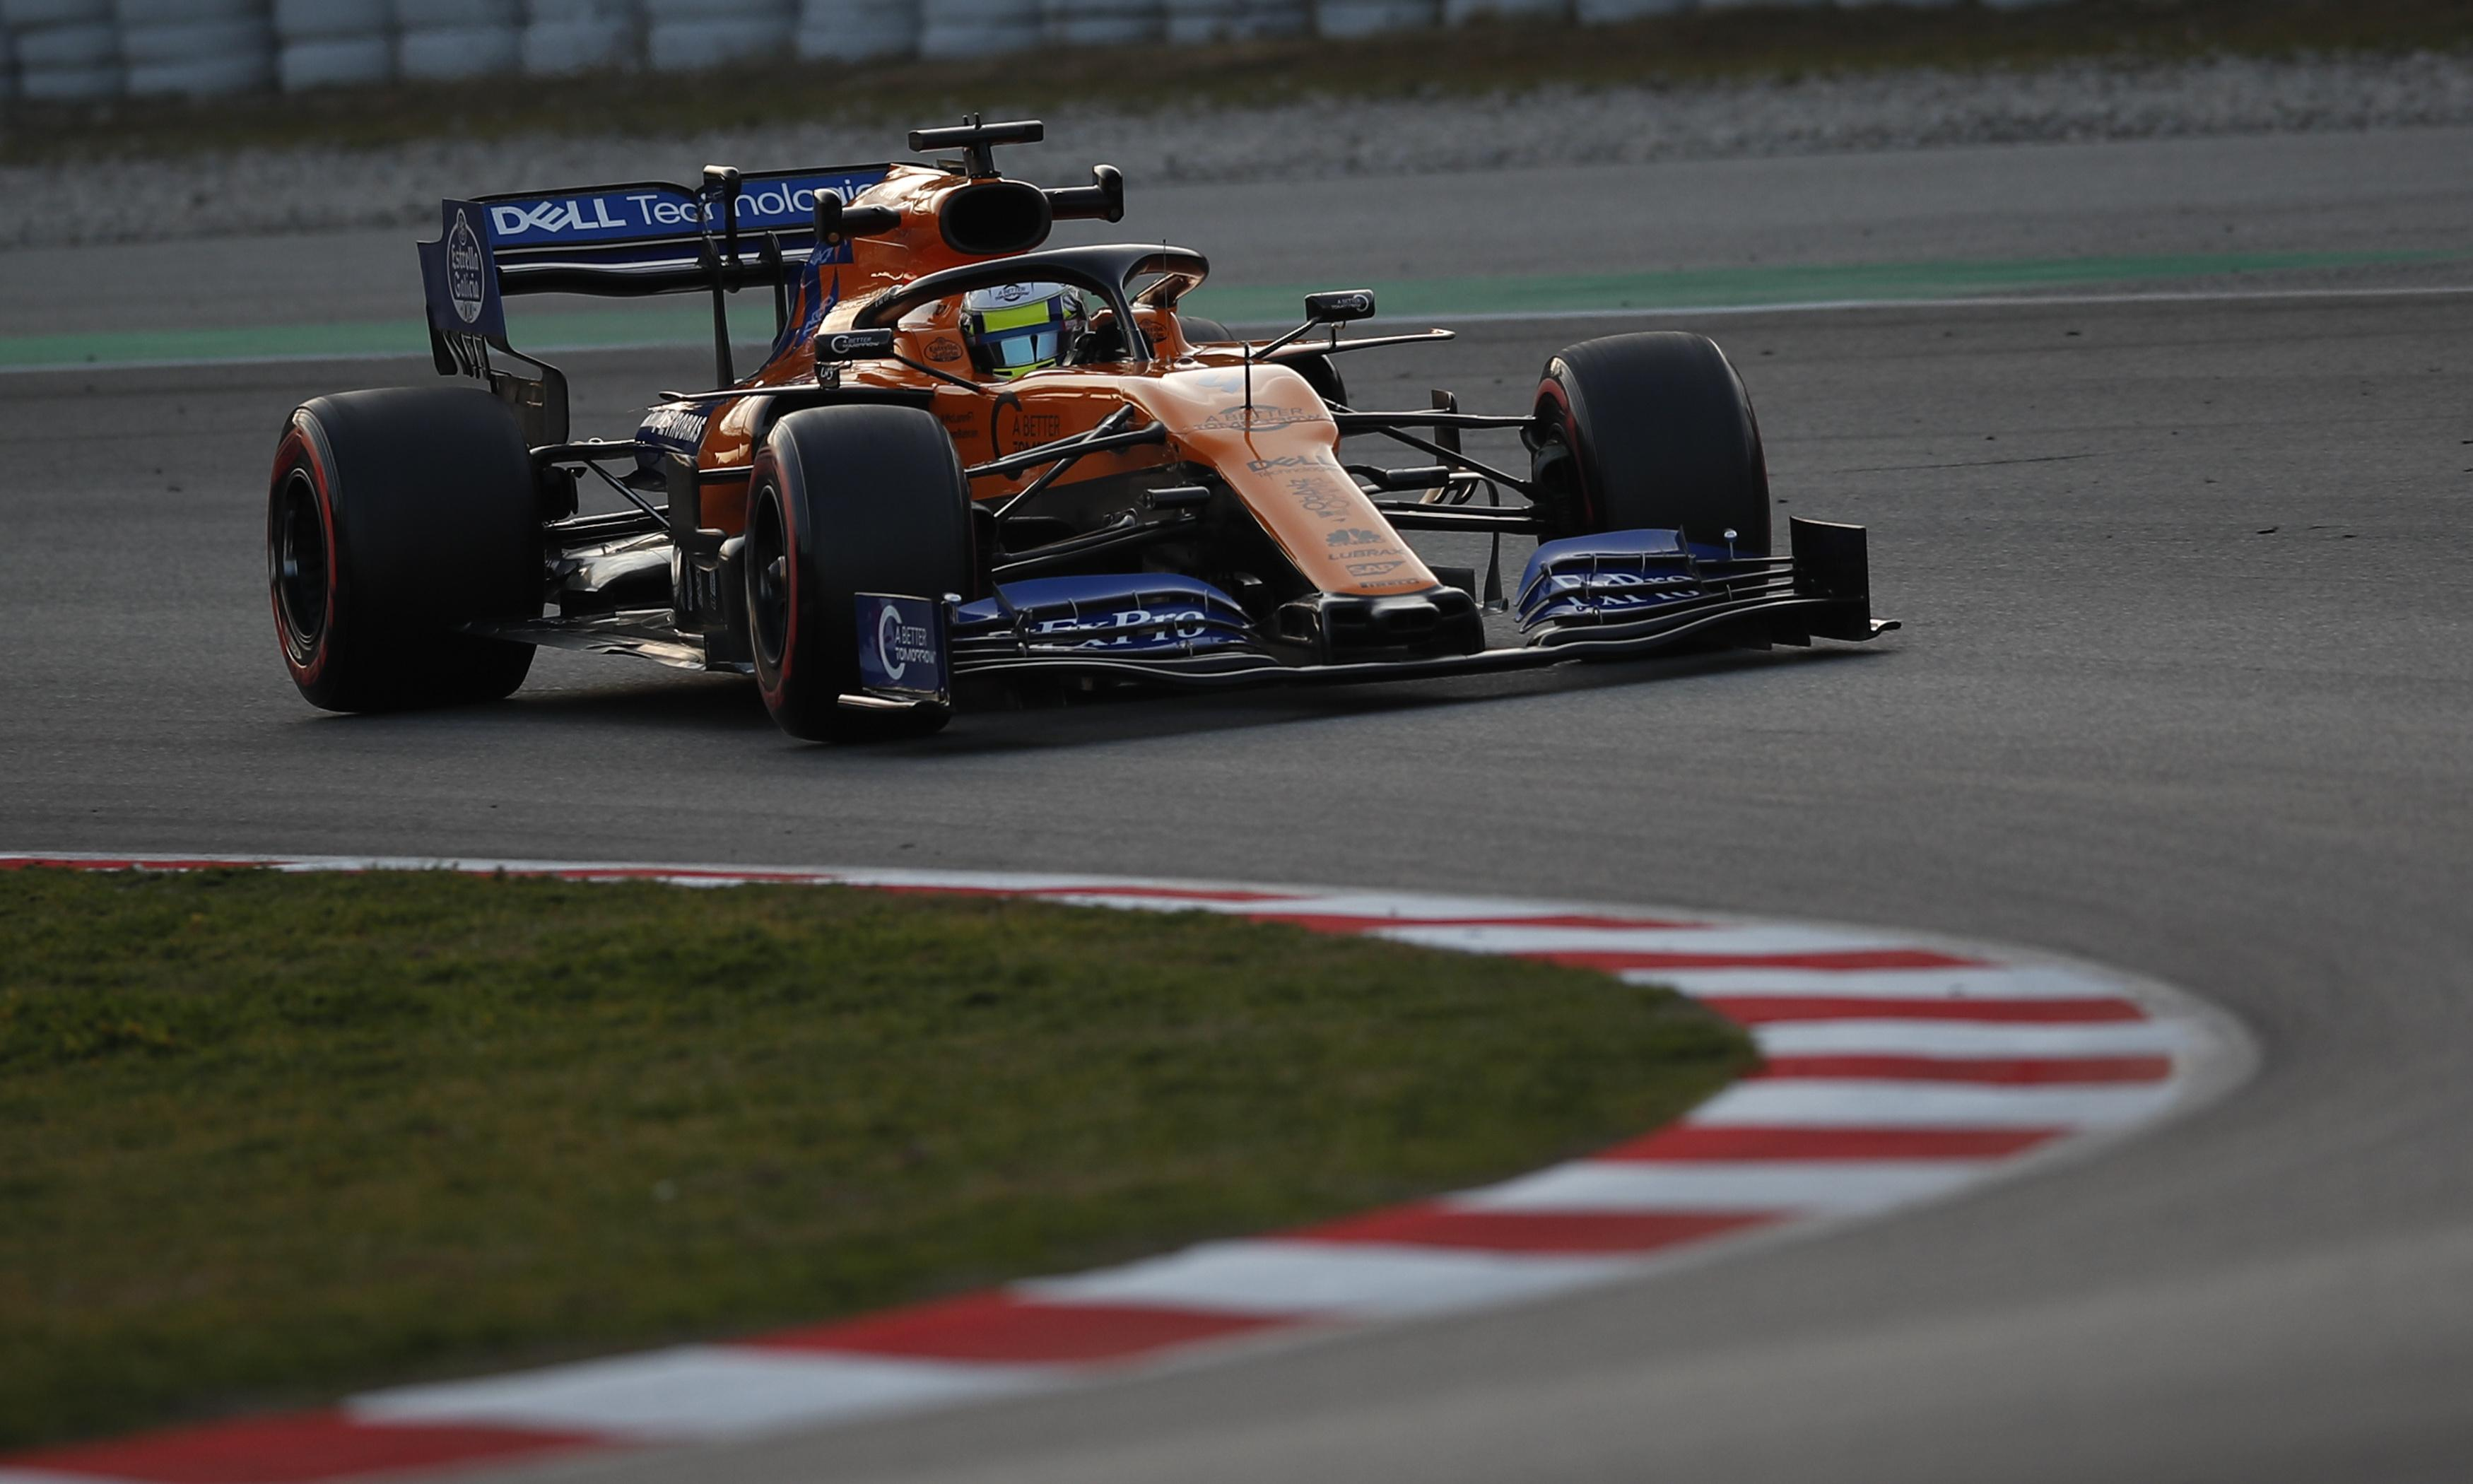 British driver Lando Norris makes a fast start on F1 track bow for McLaren